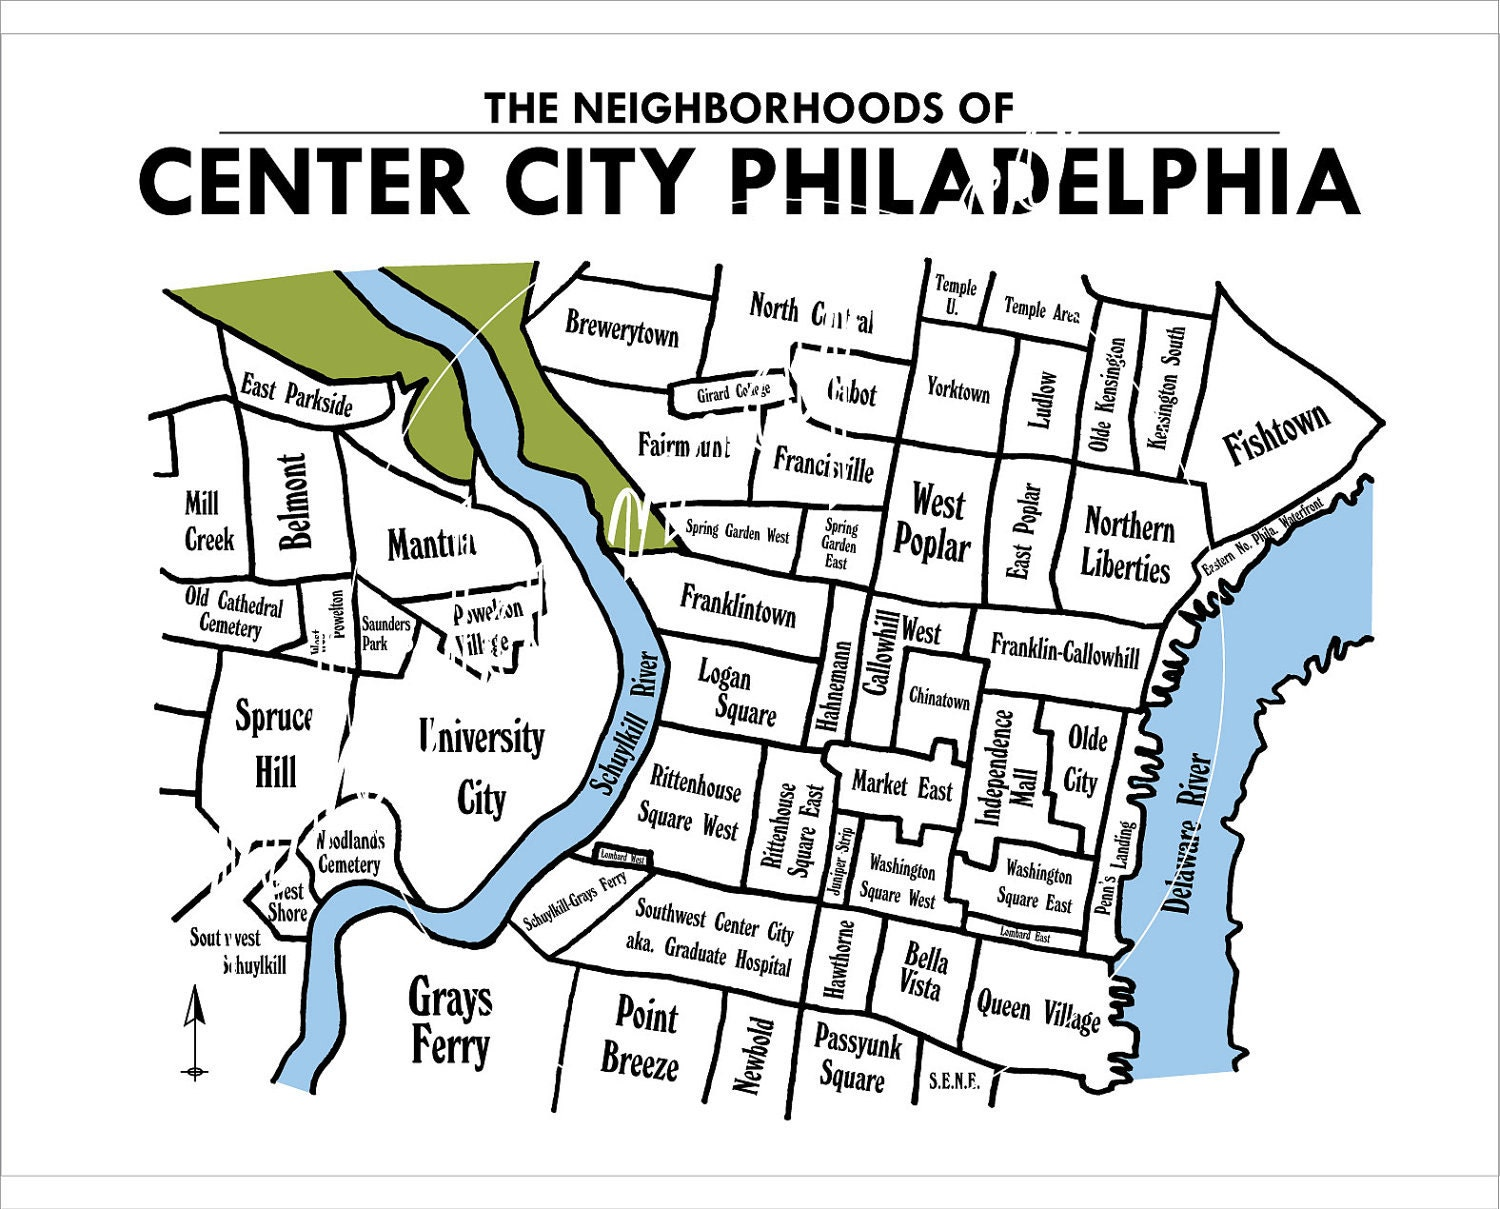 Center City Philadelphia Neighborhoods Map By PhilaMapCo